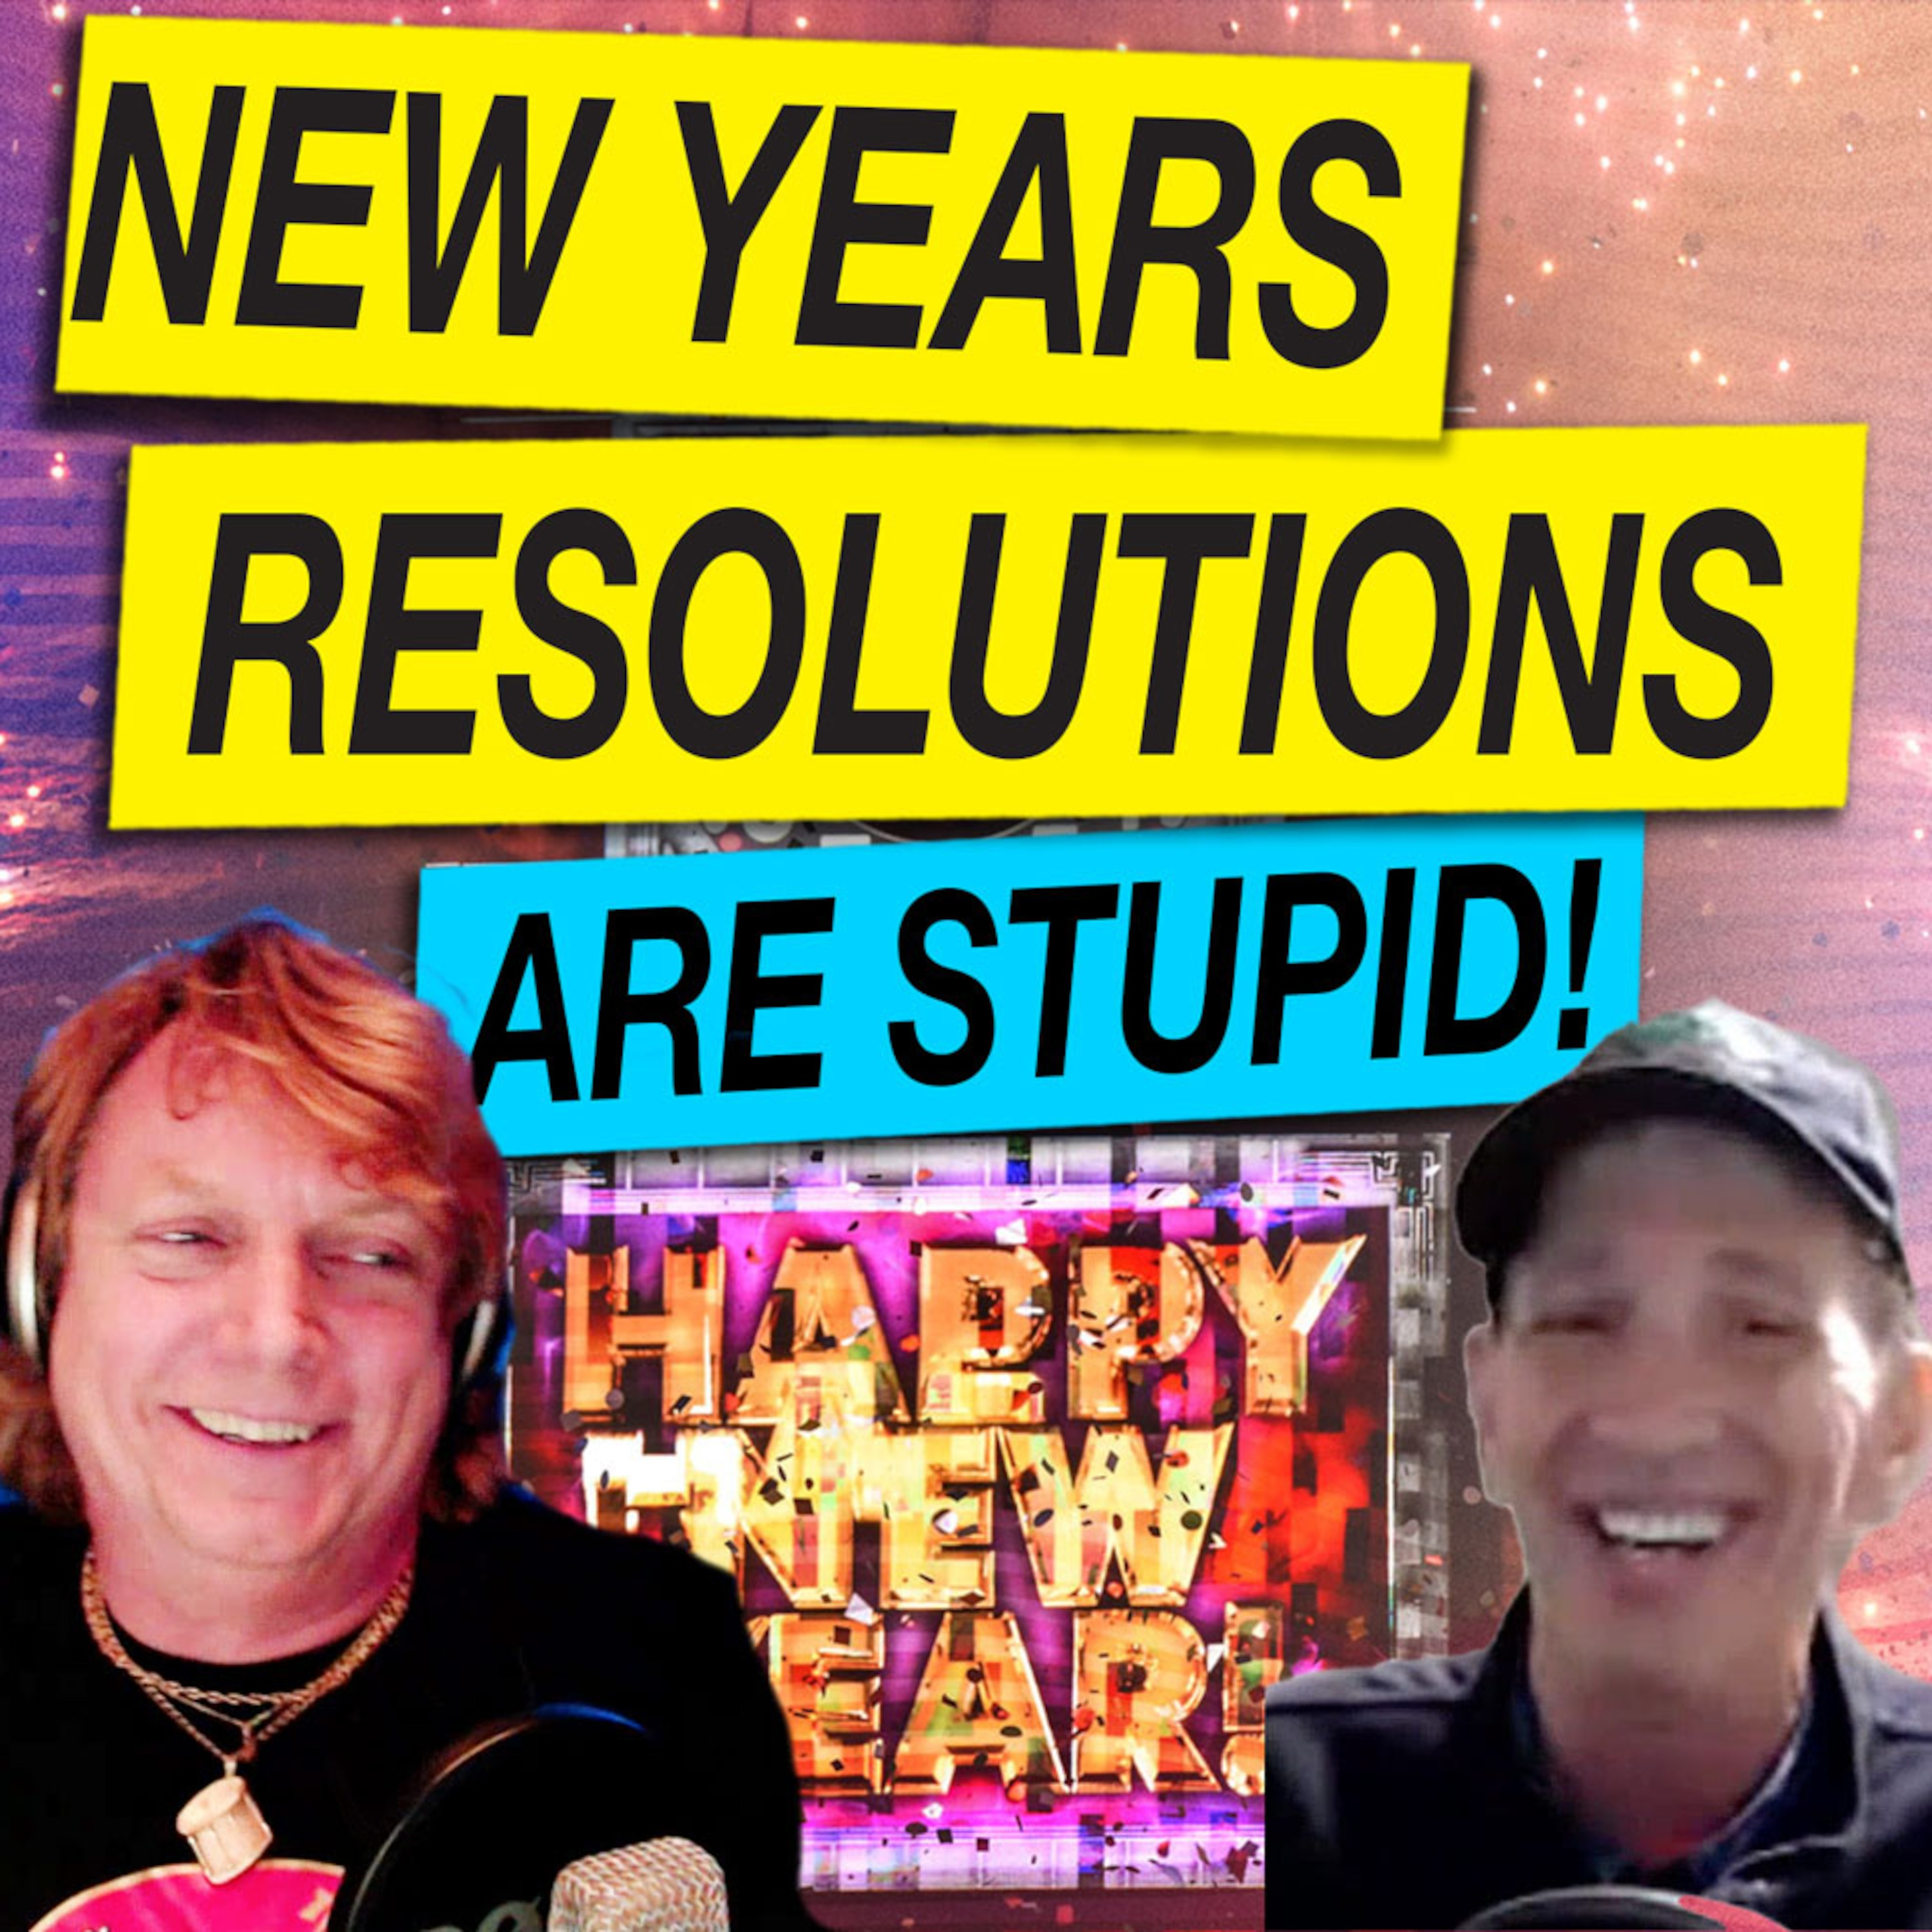 Are New Years Resolutions Stupid?